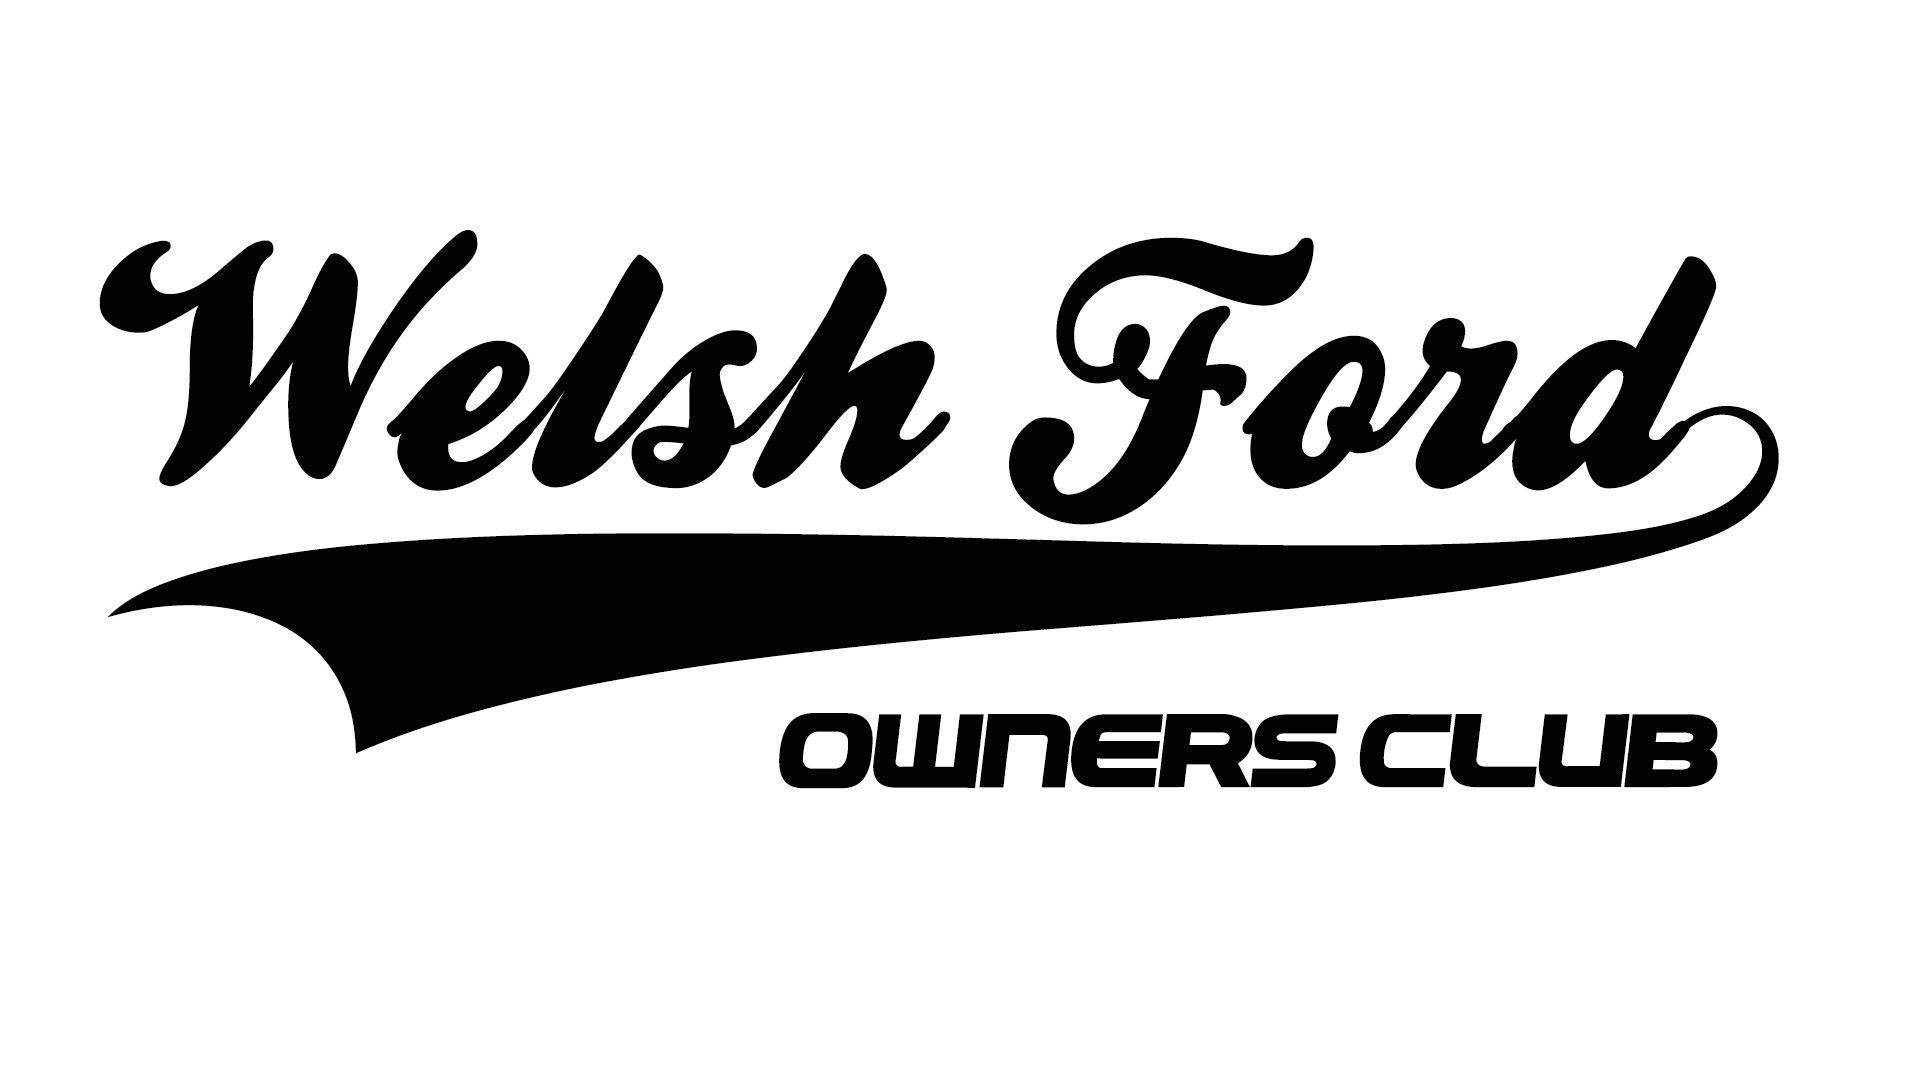 Welsh Ford Owners Club